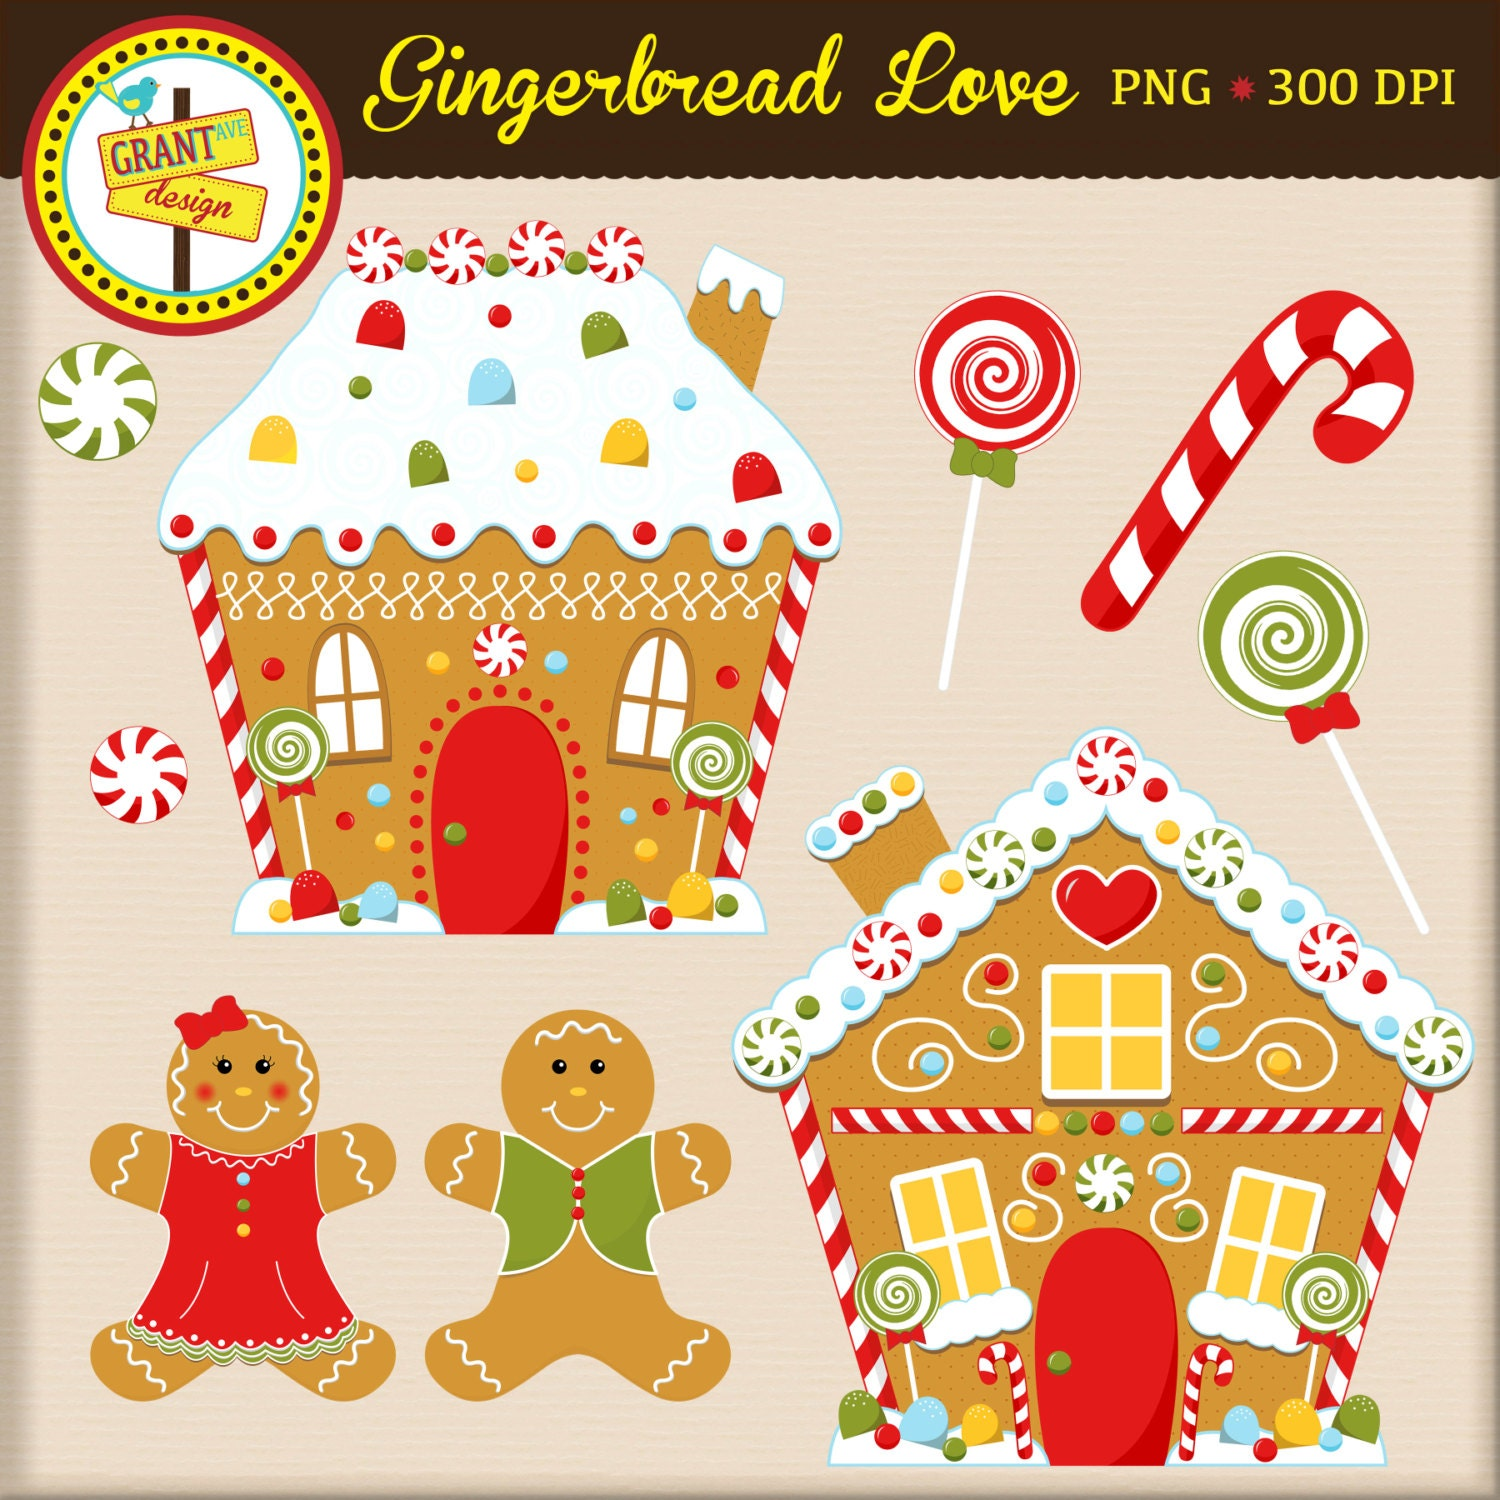 gingerbread clipart gingerbread houses and people clip art rh etsy com gingerbread house border clipart gingerbread house candy clipart